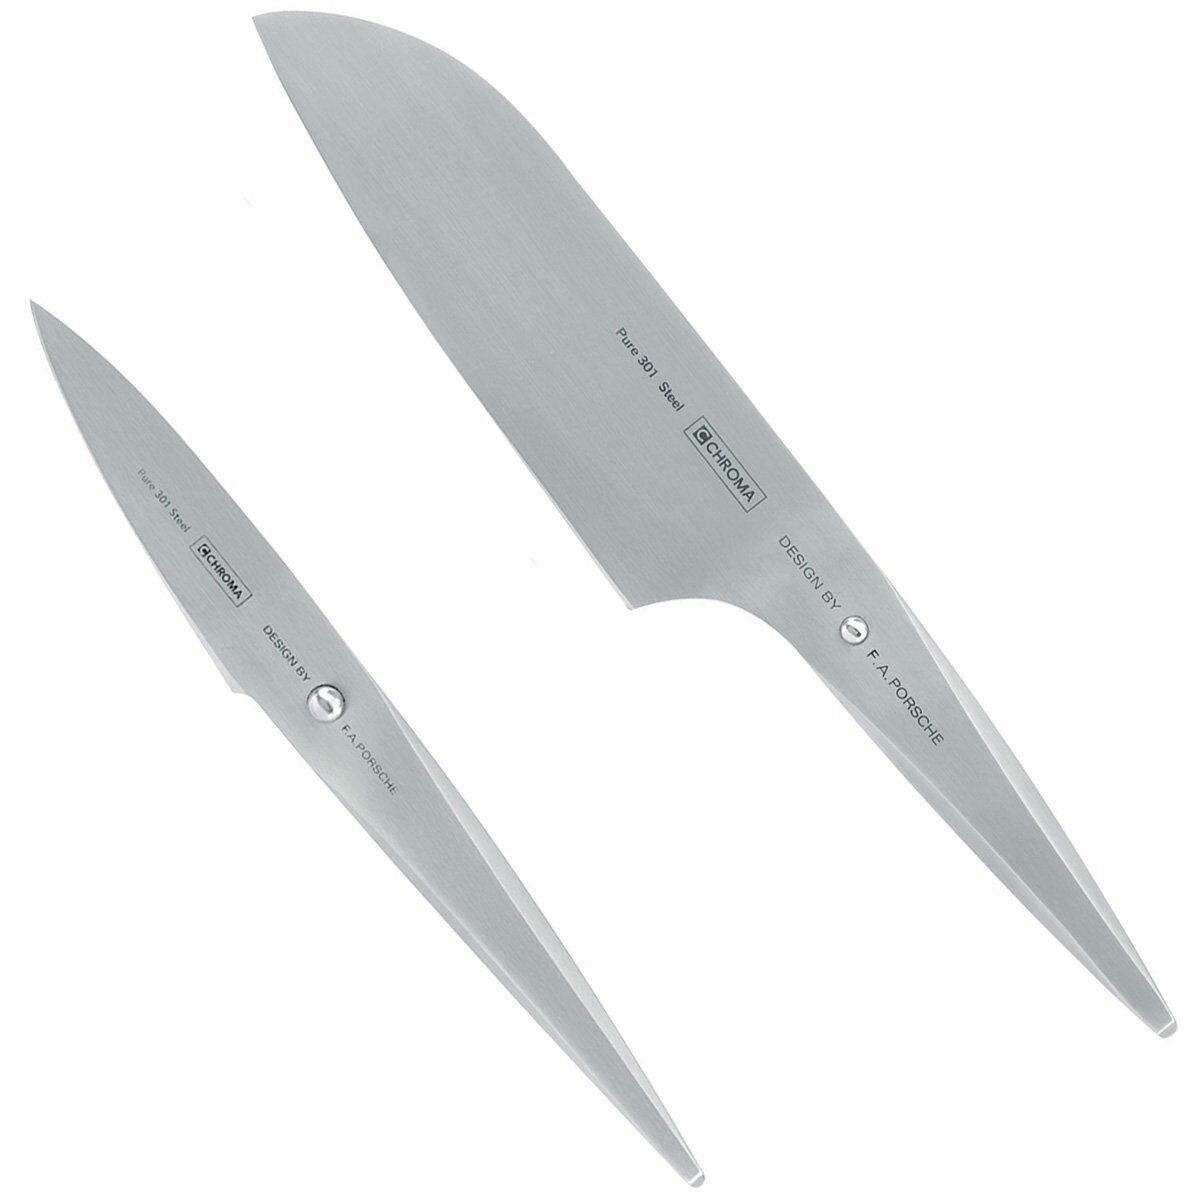 Chroma Japanese Knife Set - 2 piece Stainless